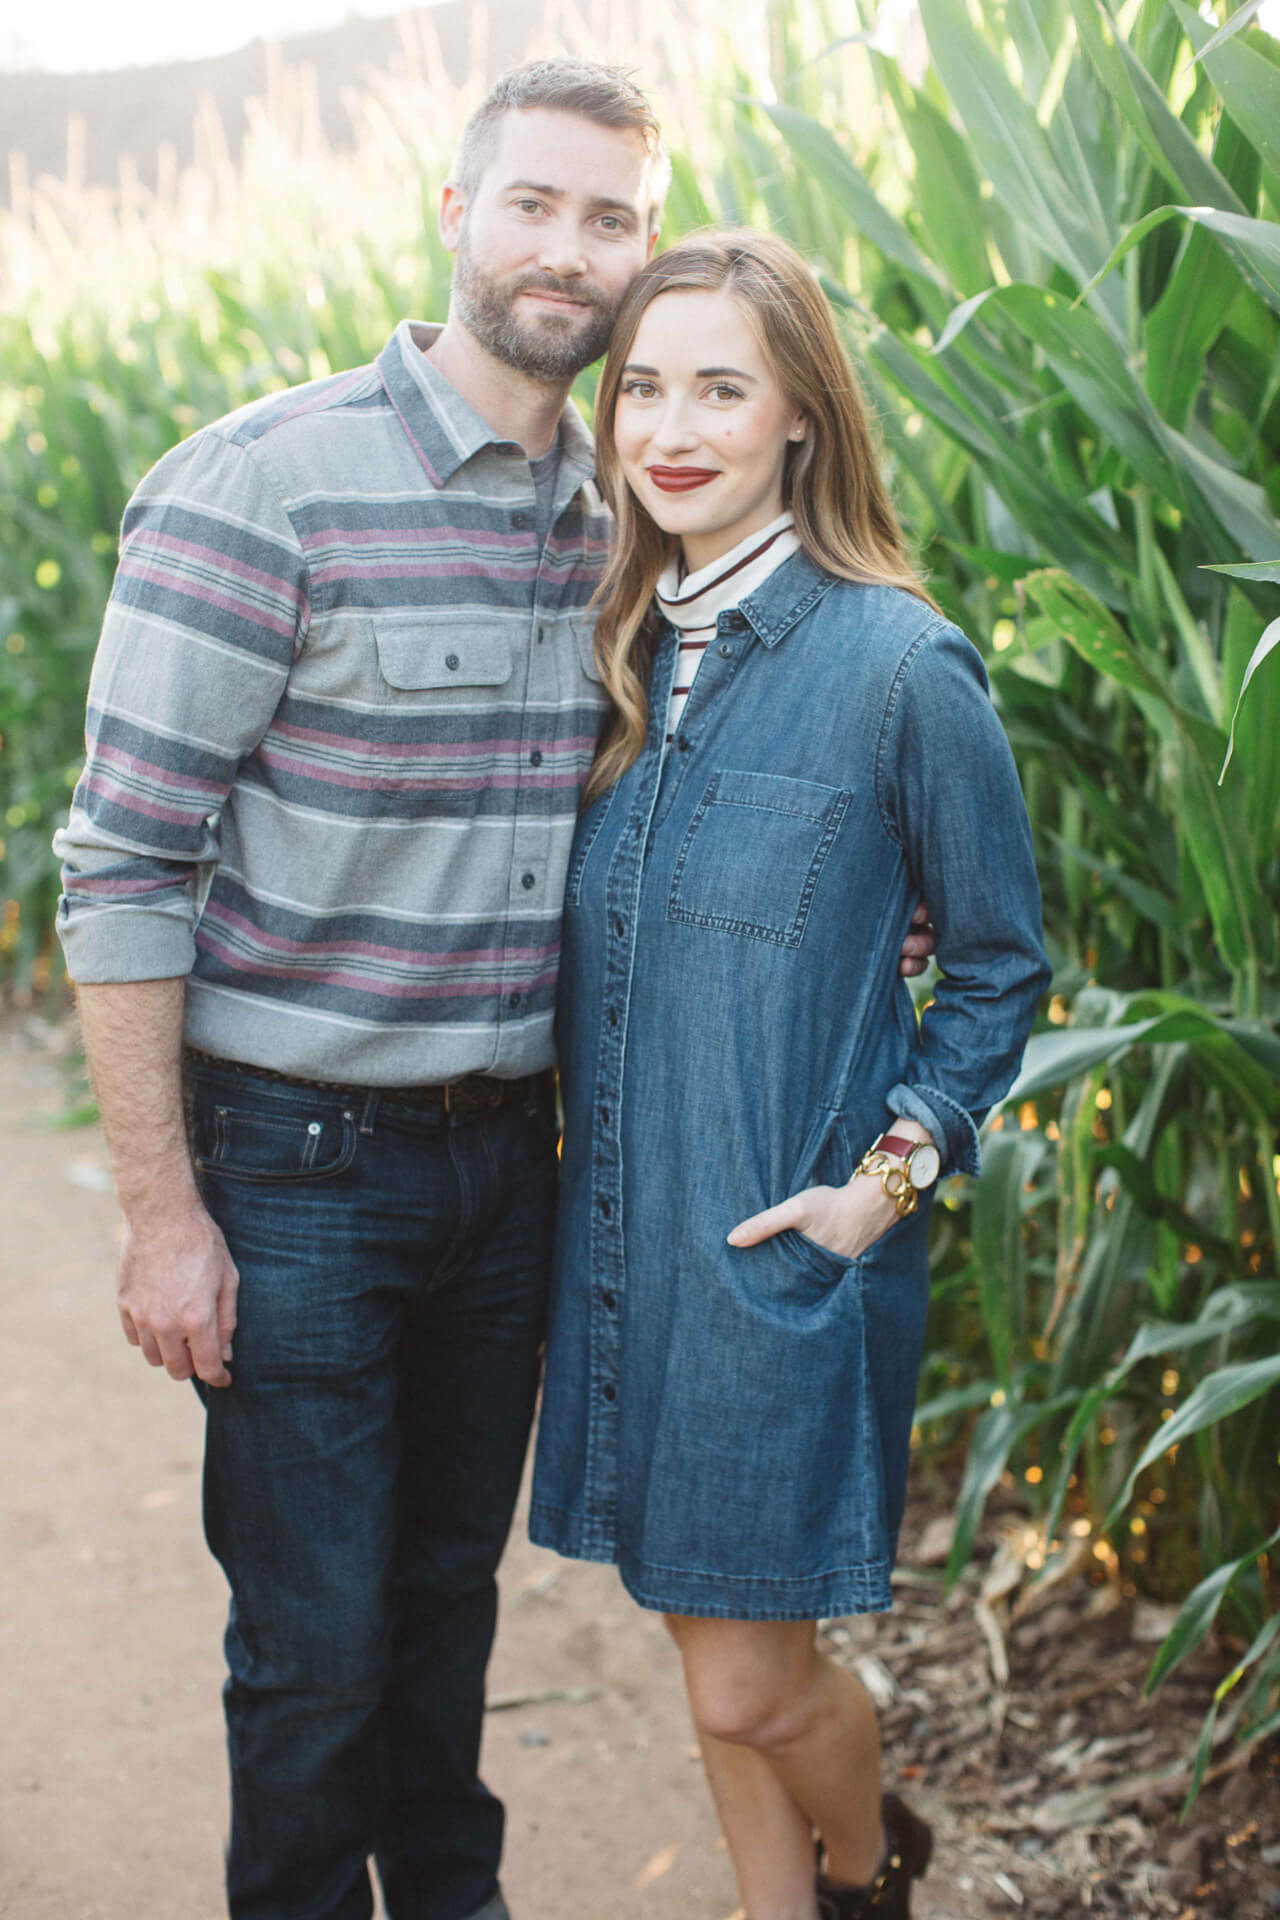 Mara and Matthew at the corn maze